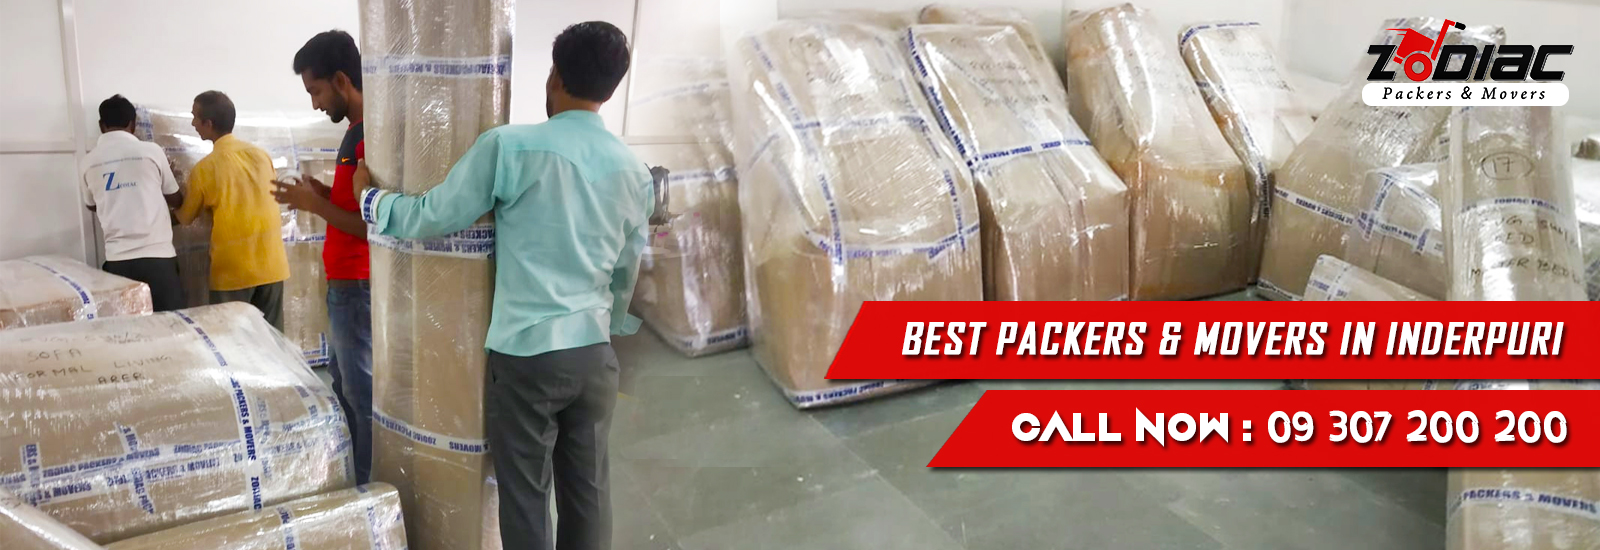 Packers and Movers in Inderpuri